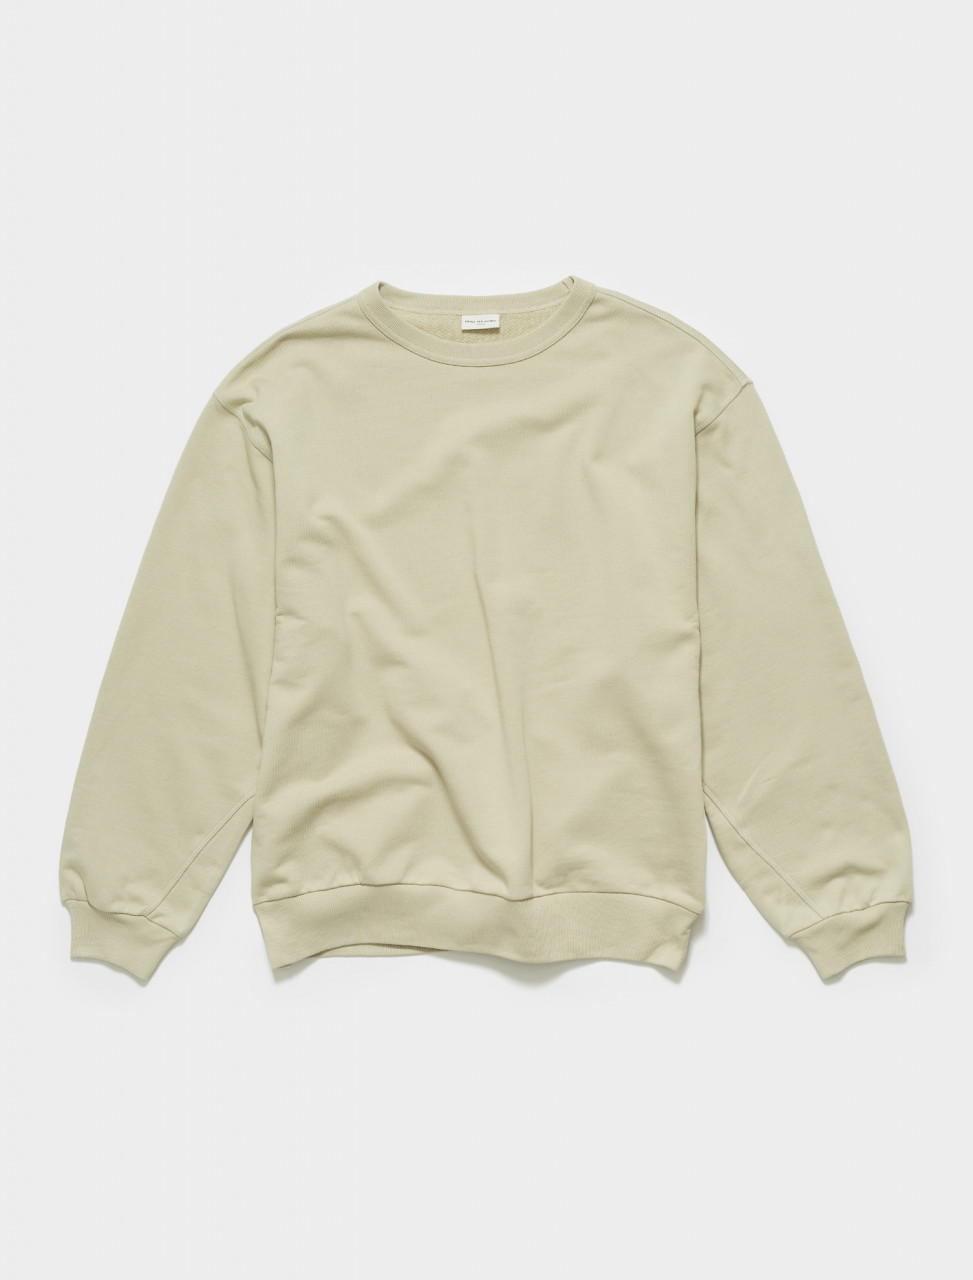 211-21139-2609-801 DRIES VAN NOTEN HAXTI SWEATER IN CEMENT